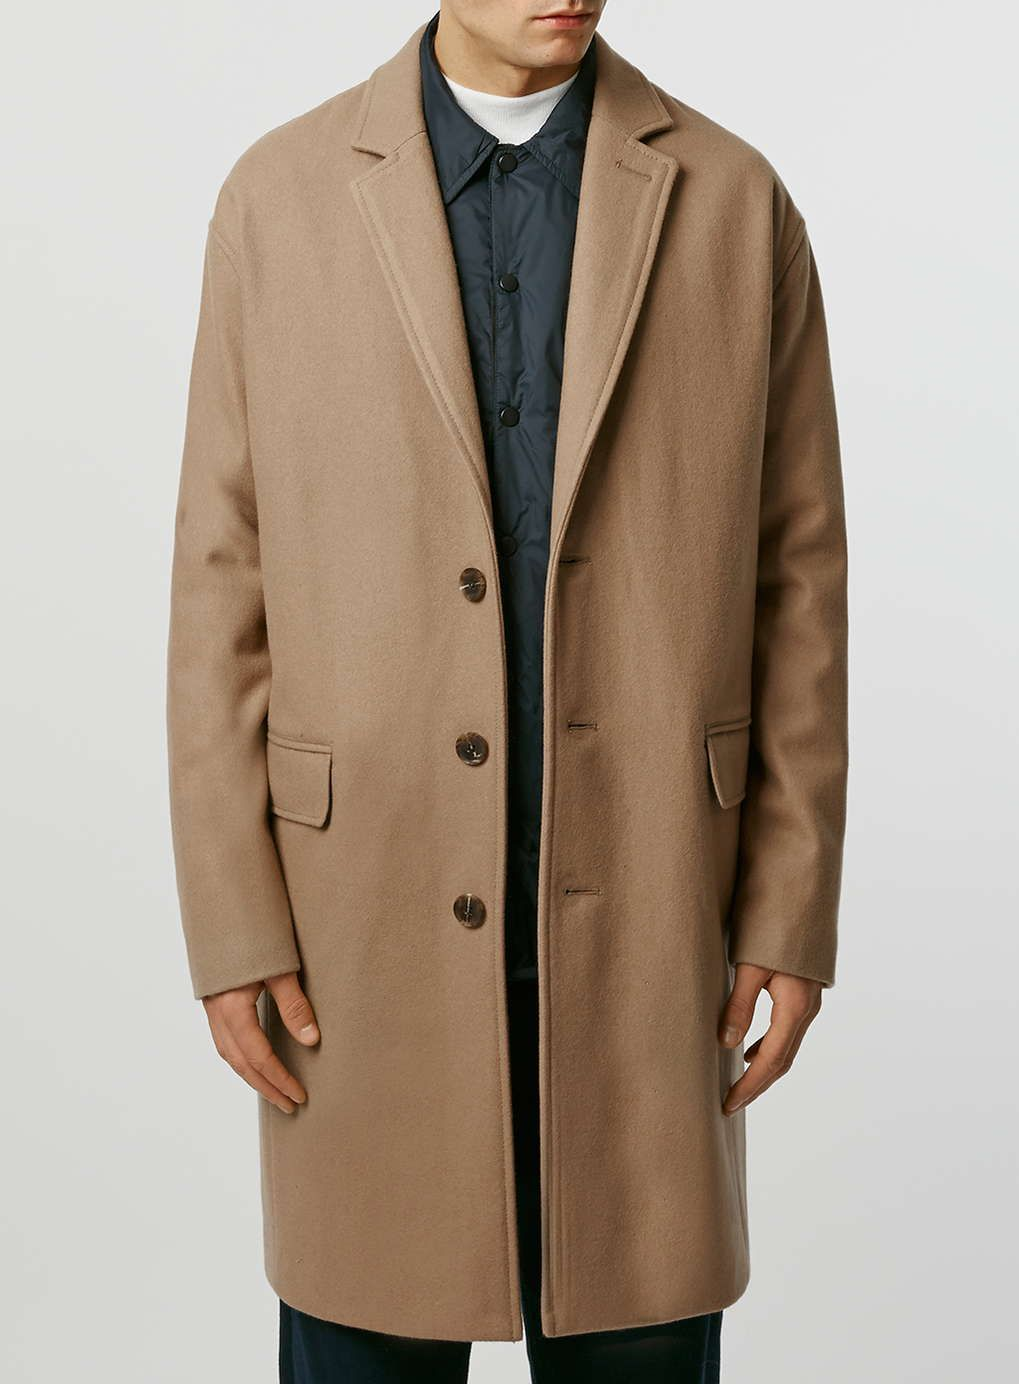 Limited Edition Camel Wool Rich with Cashmere Duster Coat